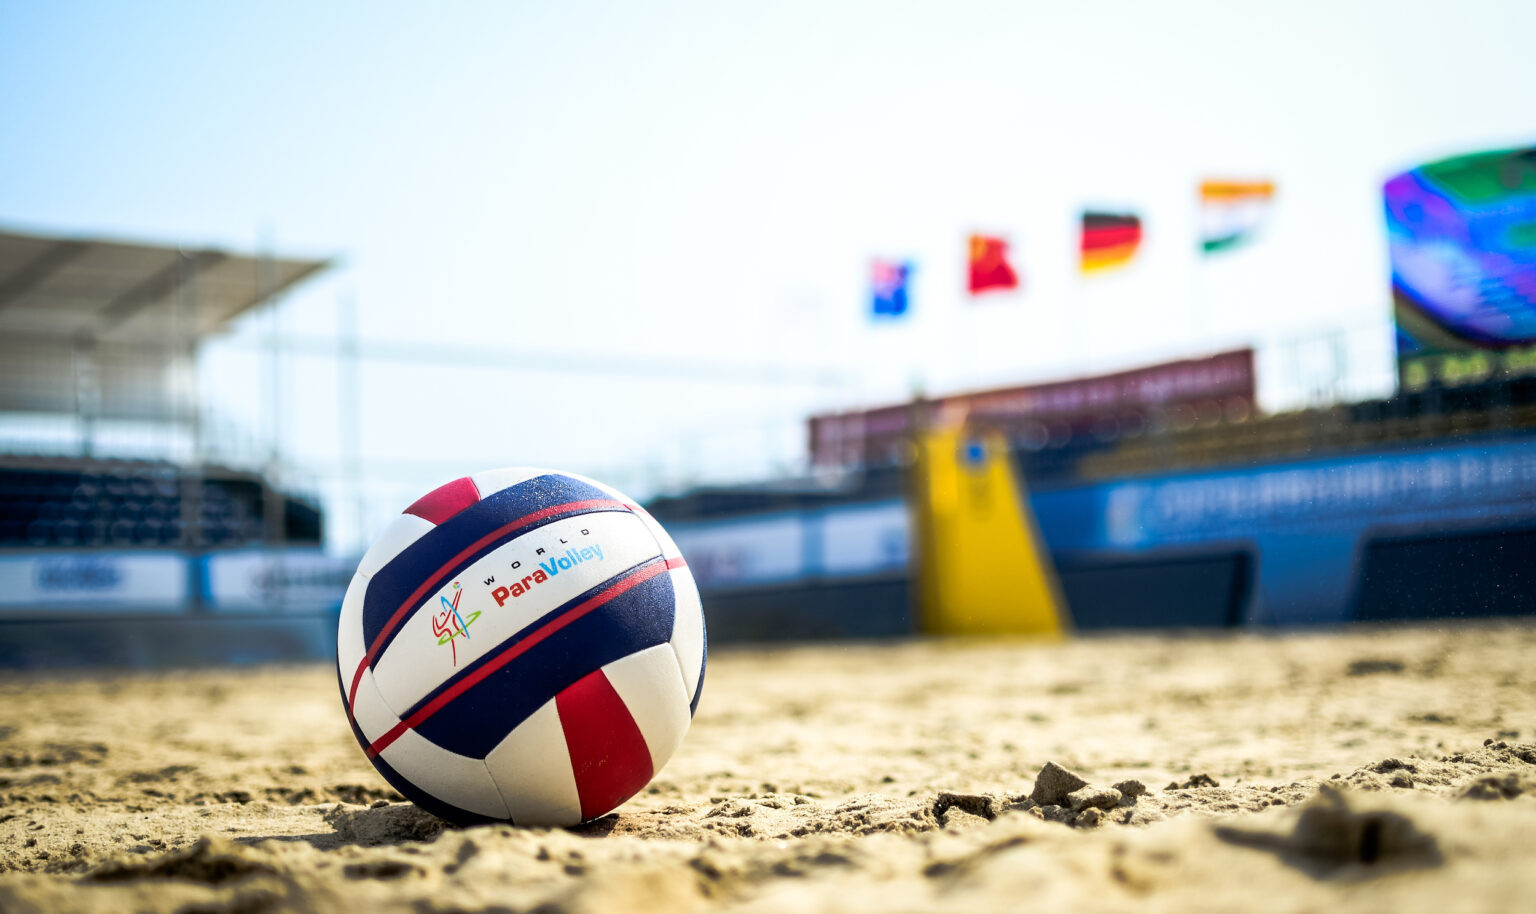 World ParaVolley offering free beach volleyballs to members